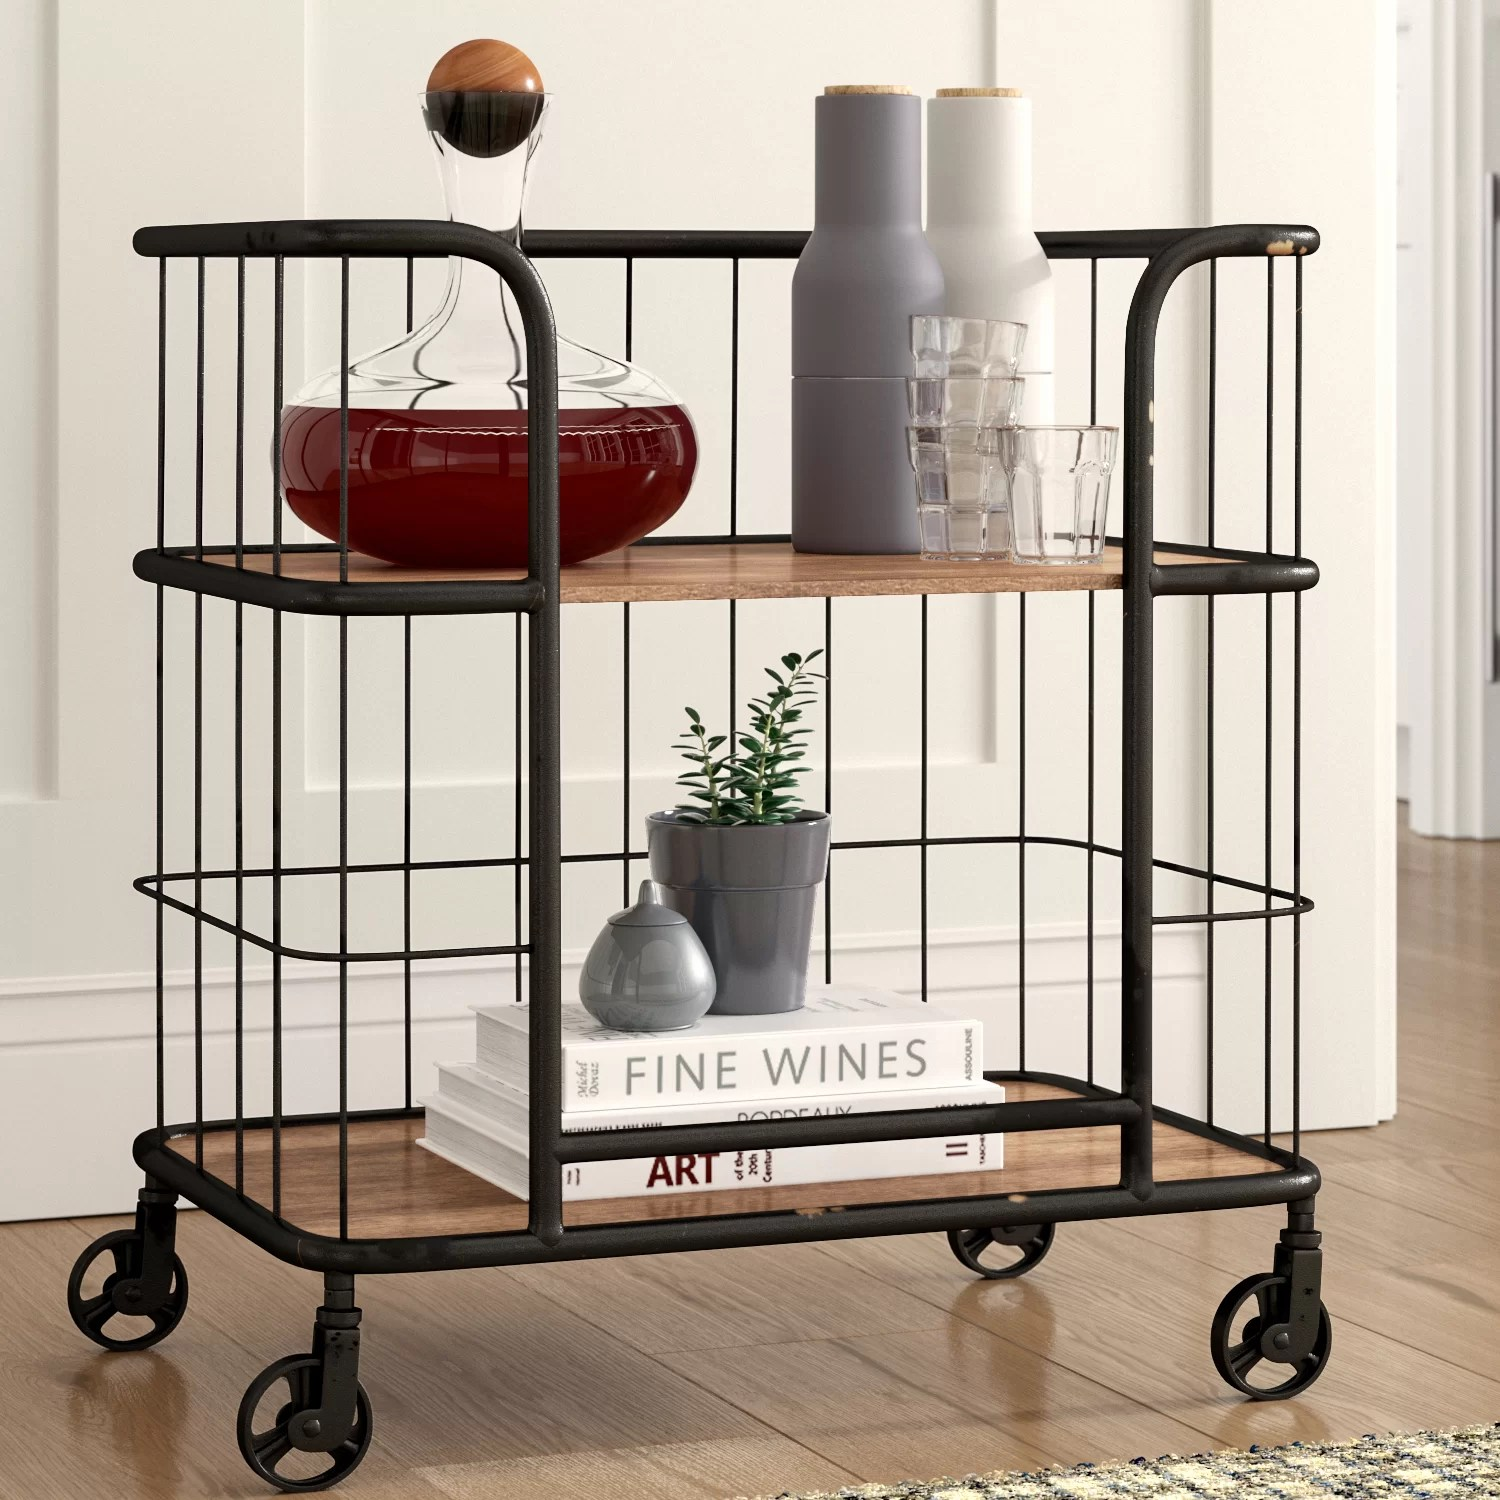 A Frame Trolley Lorient Industrial Wood And Metal Trolley Bar Cart